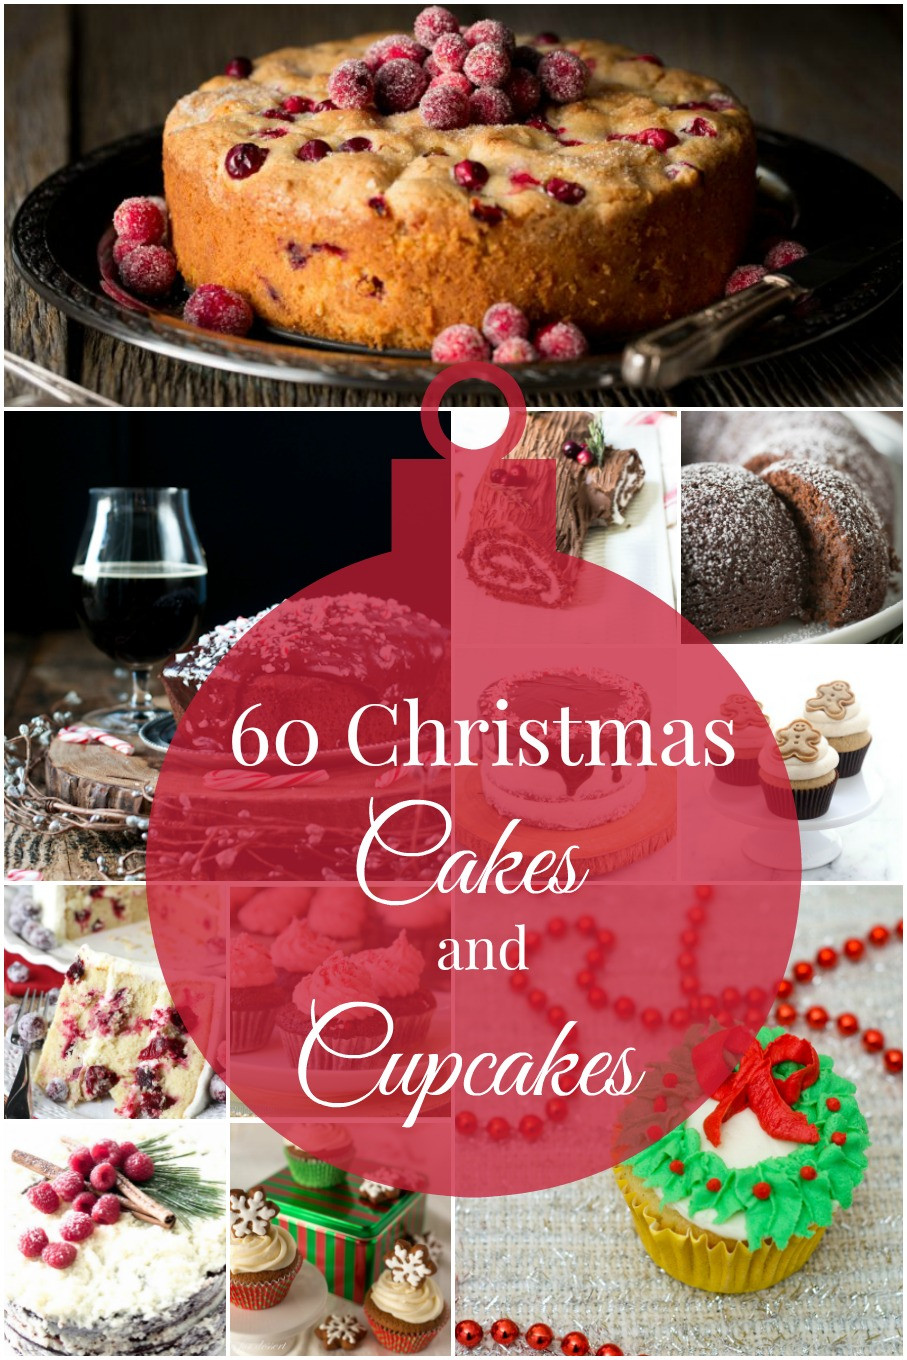 Christmas Cakes Flavors  60 Christmas Cakes and Cupcakes Roundup by The Redhead Baker